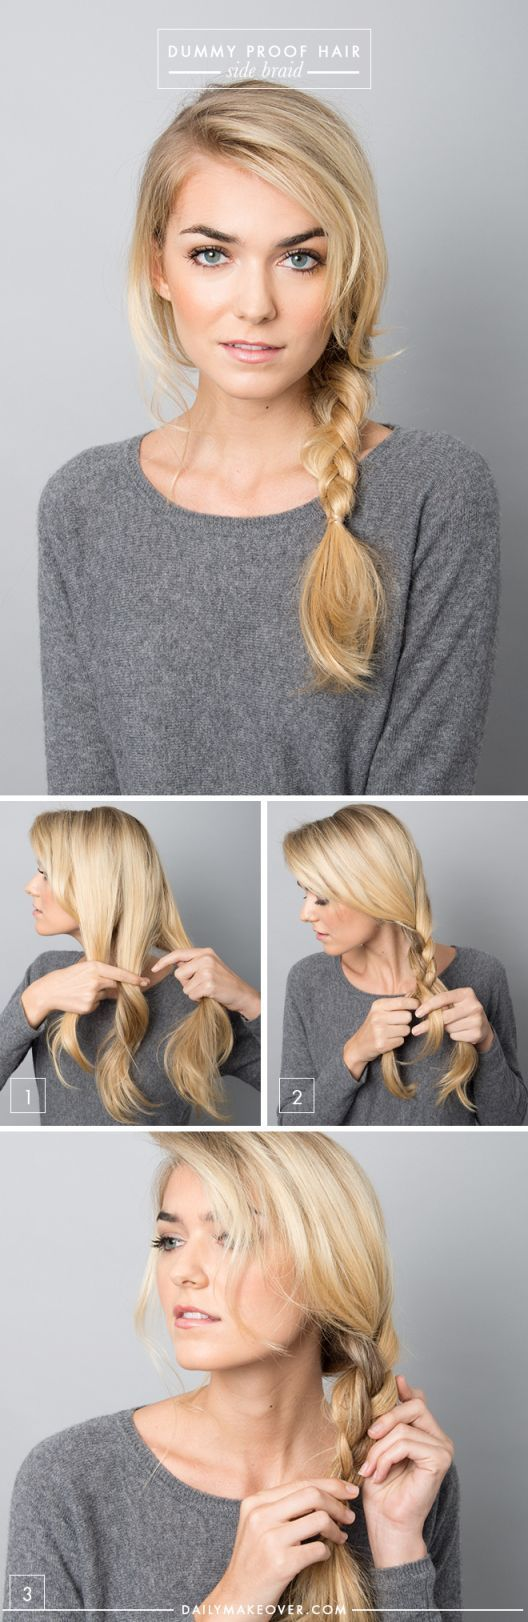 12 Dummy Proof Hairstyles That Everyone Can Master  Hair styles